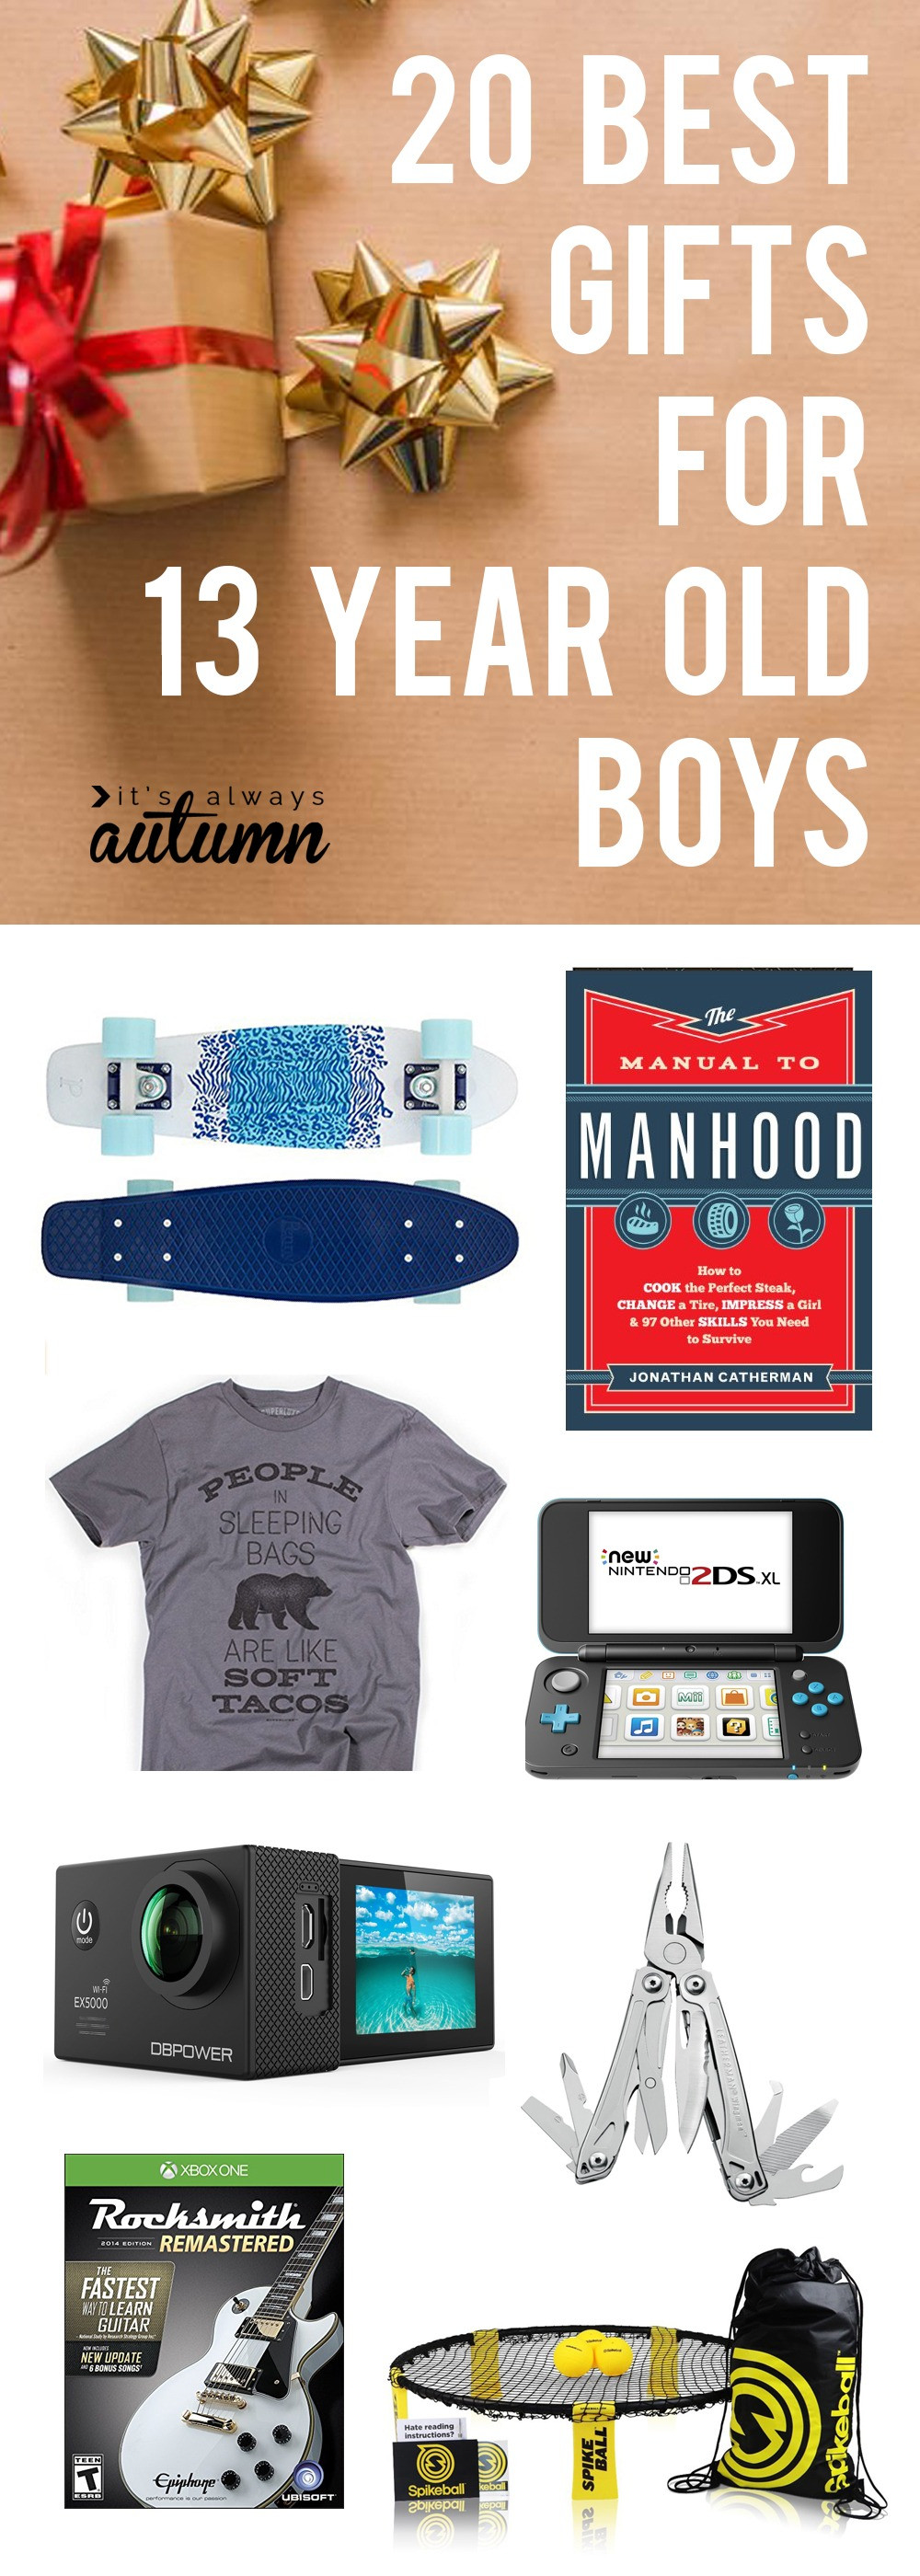 Best ideas about Good Birthday Gifts For 12 Year Old Boy . Save or Pin Christmas Presents For 13 Year Old Boy Now.